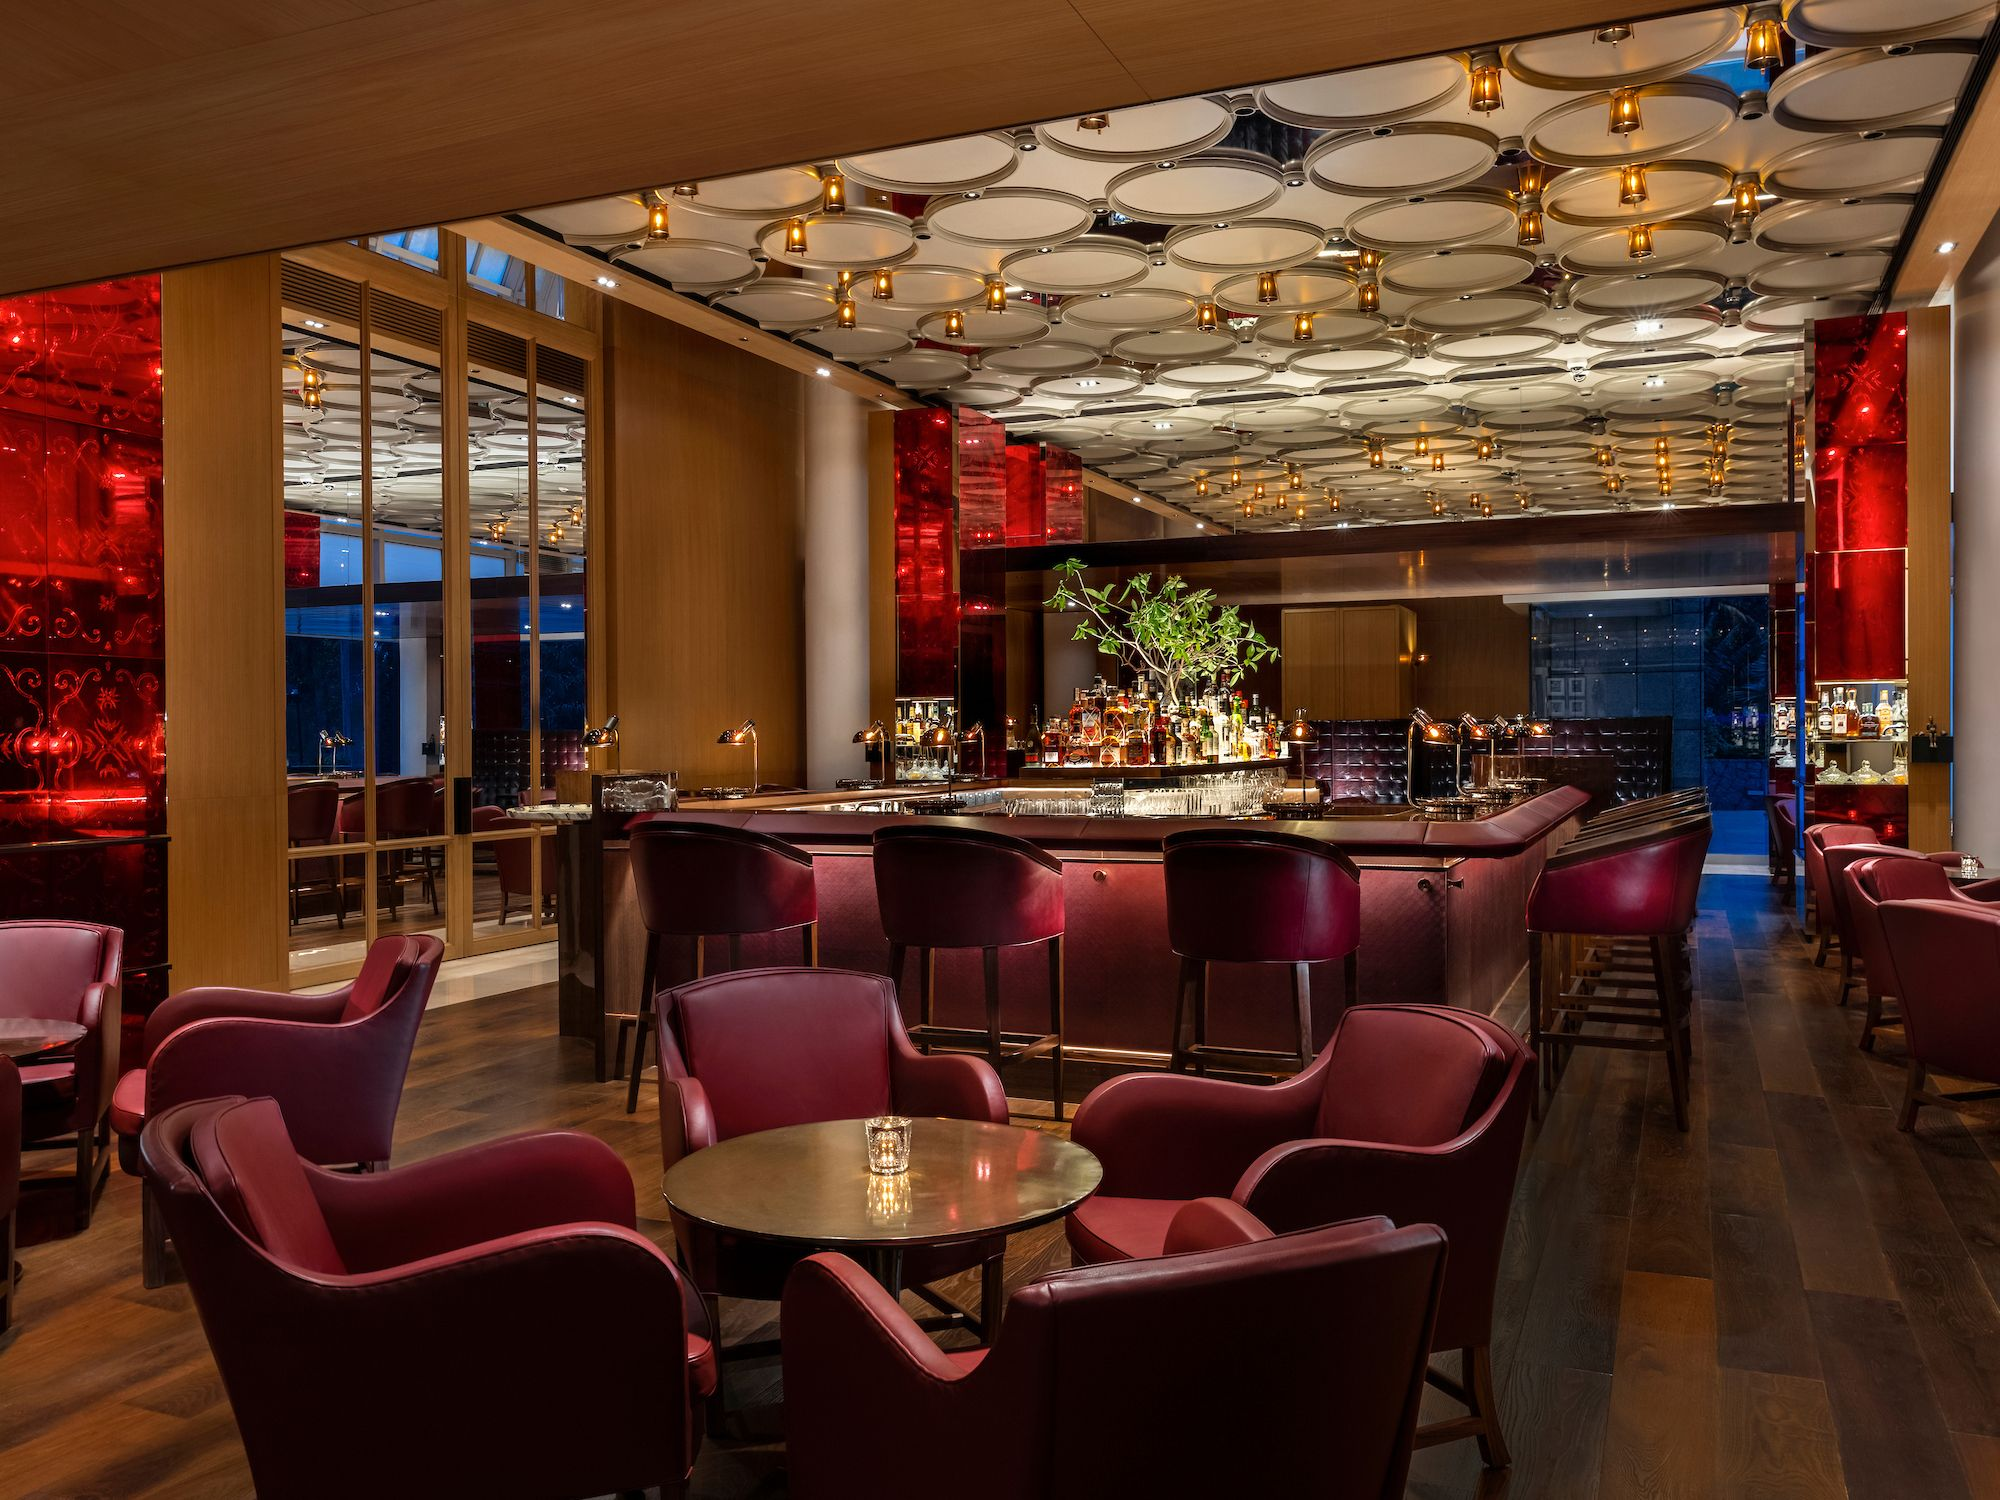 Ritz-Carlton Millenia Singapore's new East Wing introduces a new dining concept, Republic